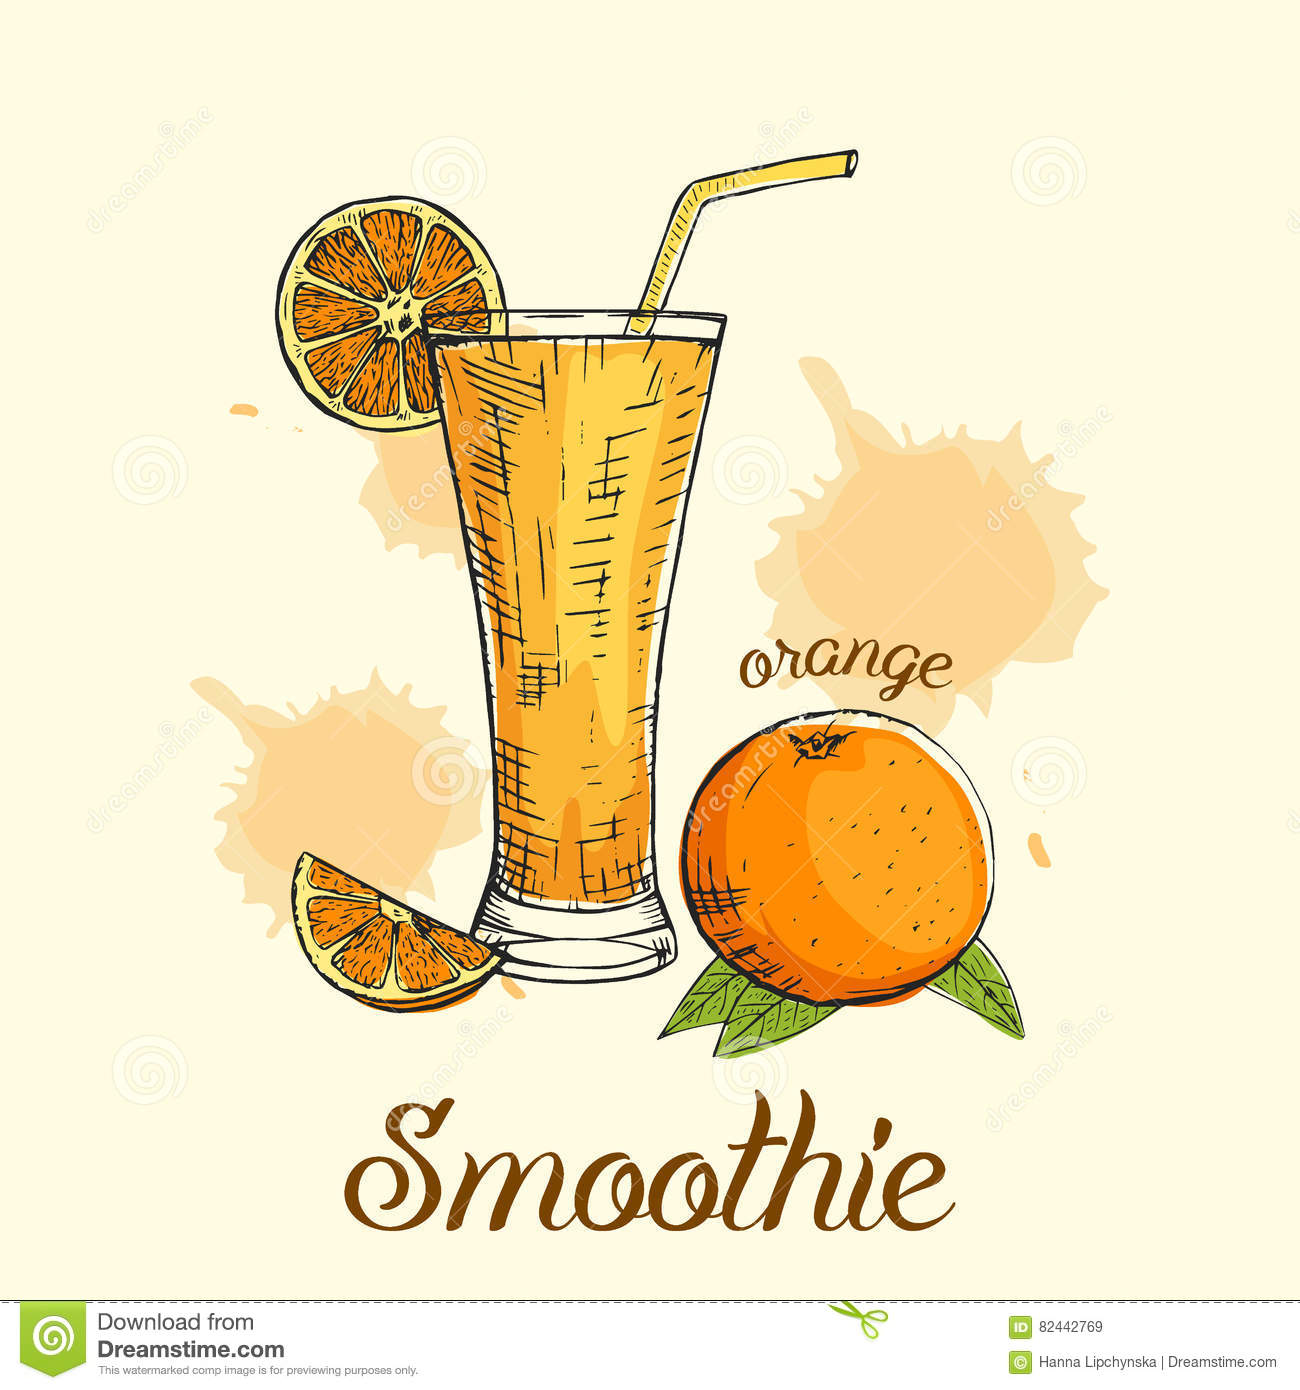 For restaurant pictures graphics illustrations clipart photos - Royalty Free Vector Banner Bar Design Glass Graphic Illustration Menu Orange Poster Restaurant Smoothie Straw Vector